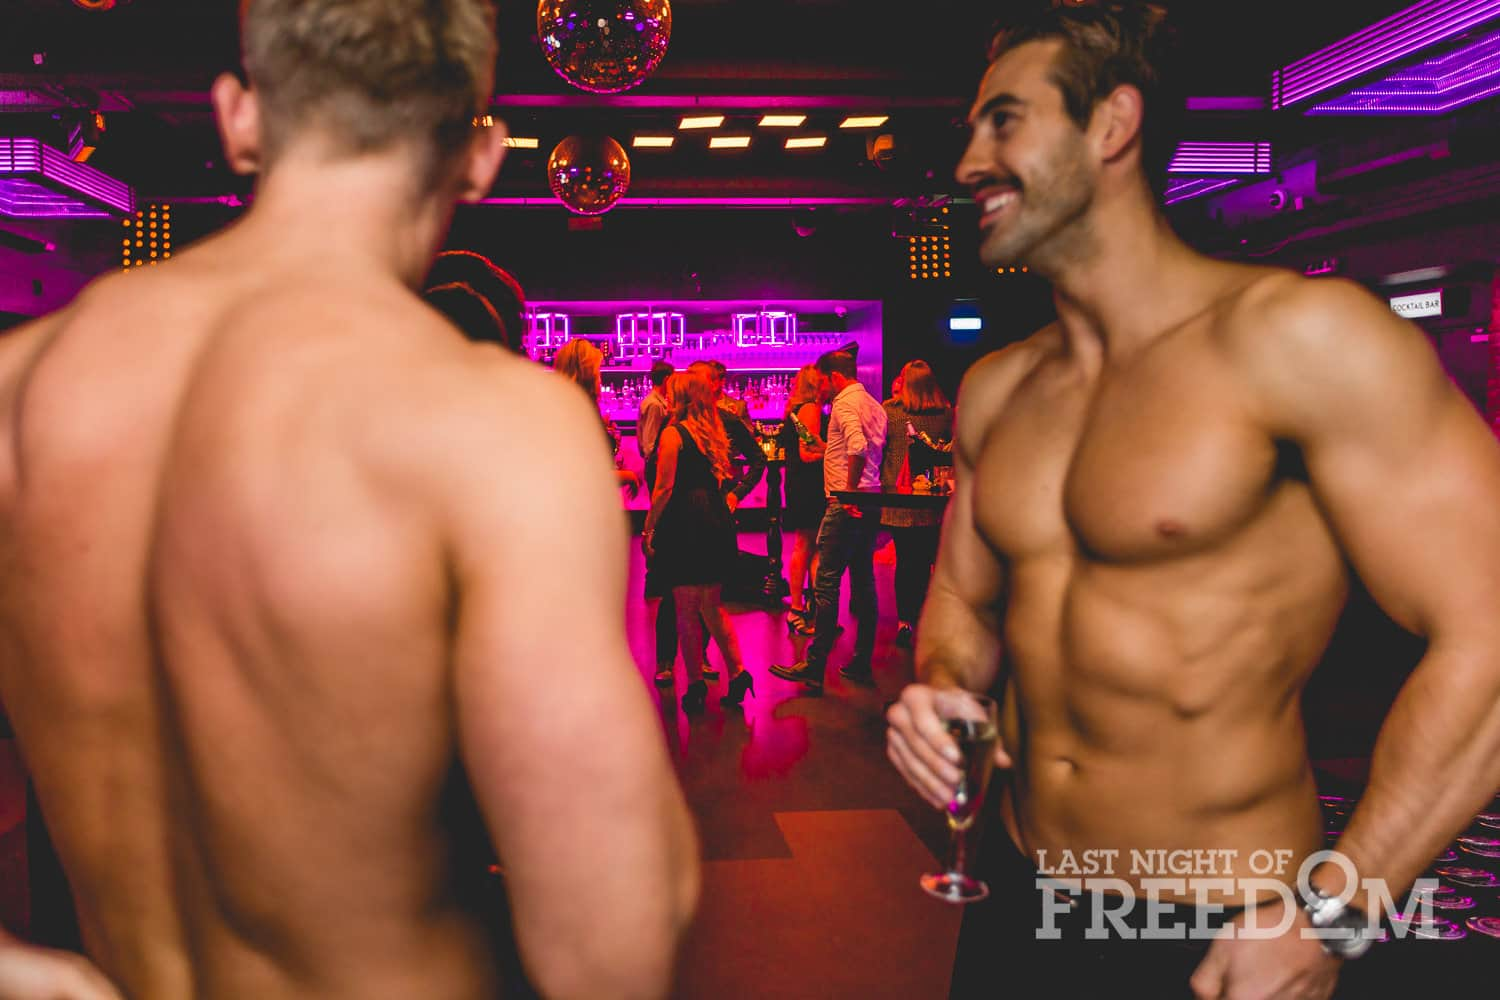 Close up of two semi-naked men chatting, with people in the background to a backdrop of pink light